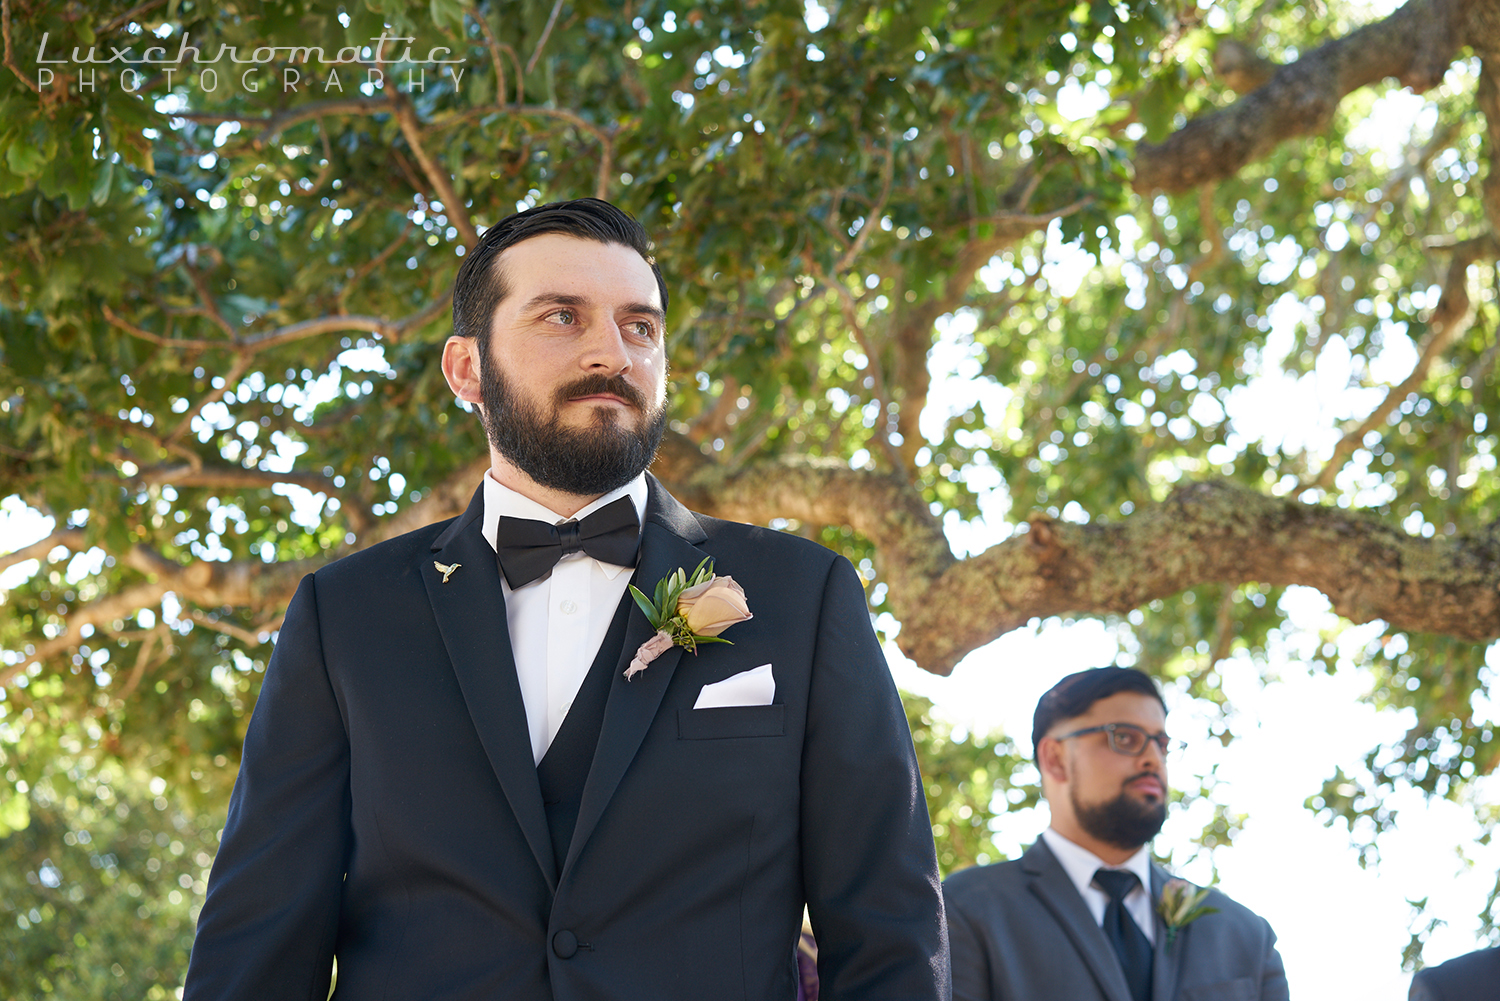 070817_Steph_Sil-San-Francisco-Bay-Area-Carmel-Valley-Monterey-Bay-California-Wedding-Los-Laureles-Lodge-Bride-Gown-Dress-Groom-Engaged-Knot-Bridesmaids-Luxchromatic-Portrait-Sony-Alpha-a7Rii-Interfit-Profoto-Best-Photographer-Photography-0301 copy.jpg